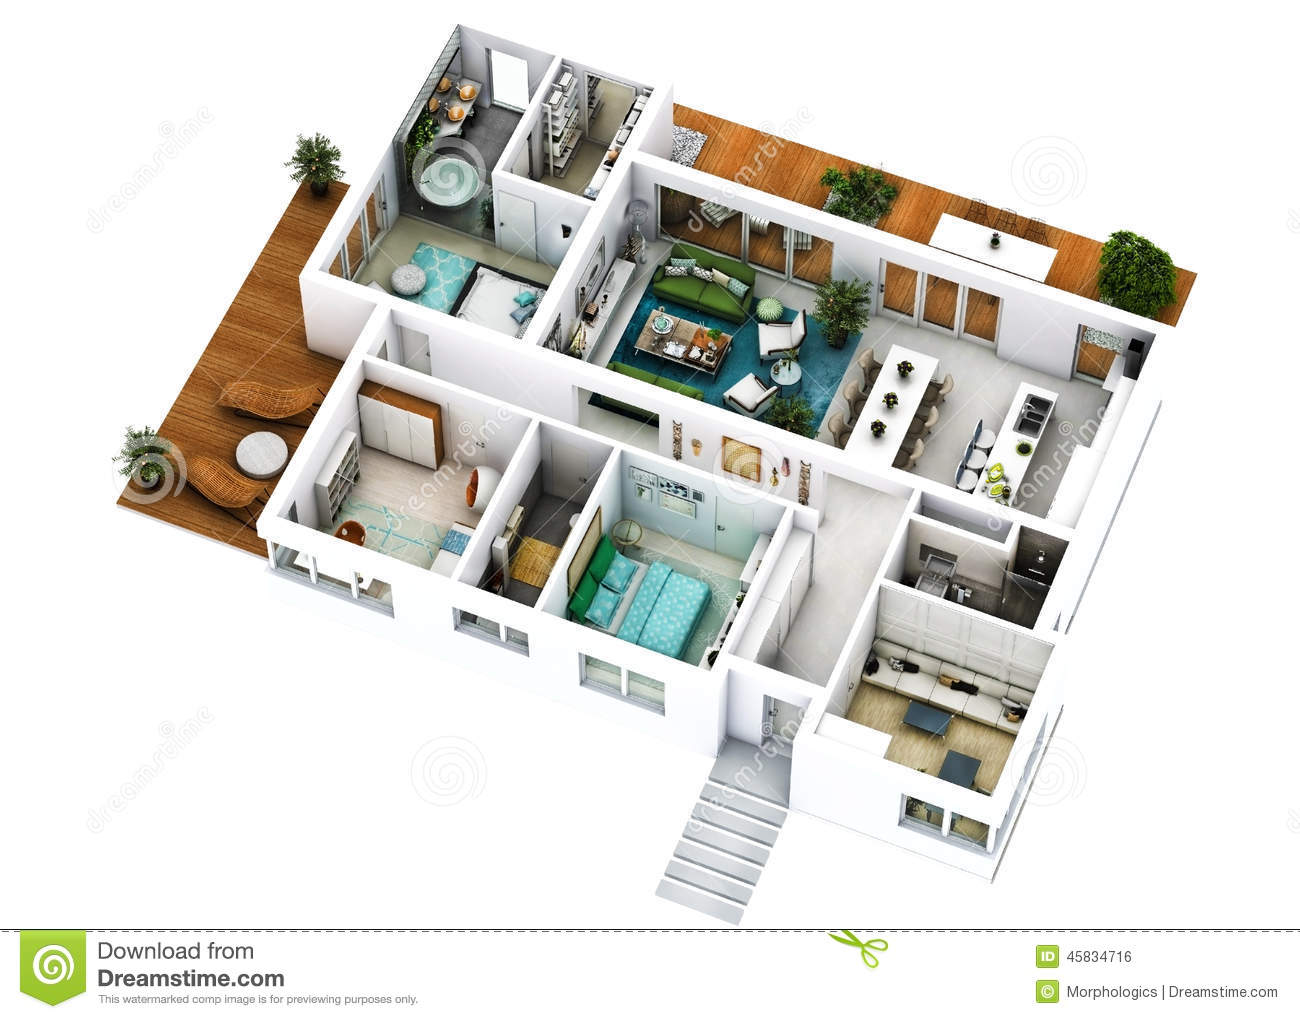 3d floor plan stock photo. Image of awesome, dressing - 45834716